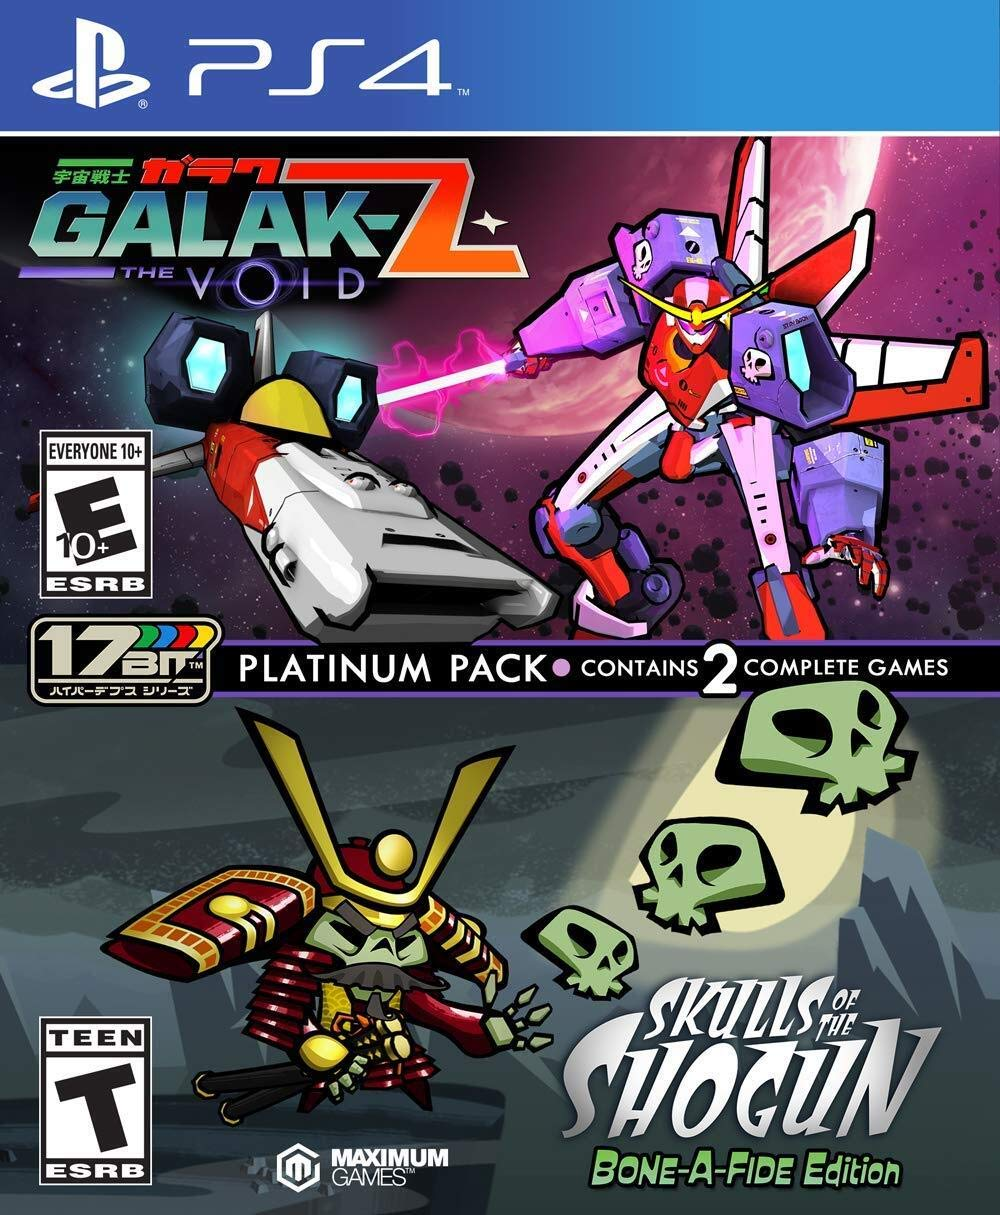 GALAK-Z: The Void / Skulls of the Shogun Bone-A Fide Platinum Pack (PS4) - PlayStation 4